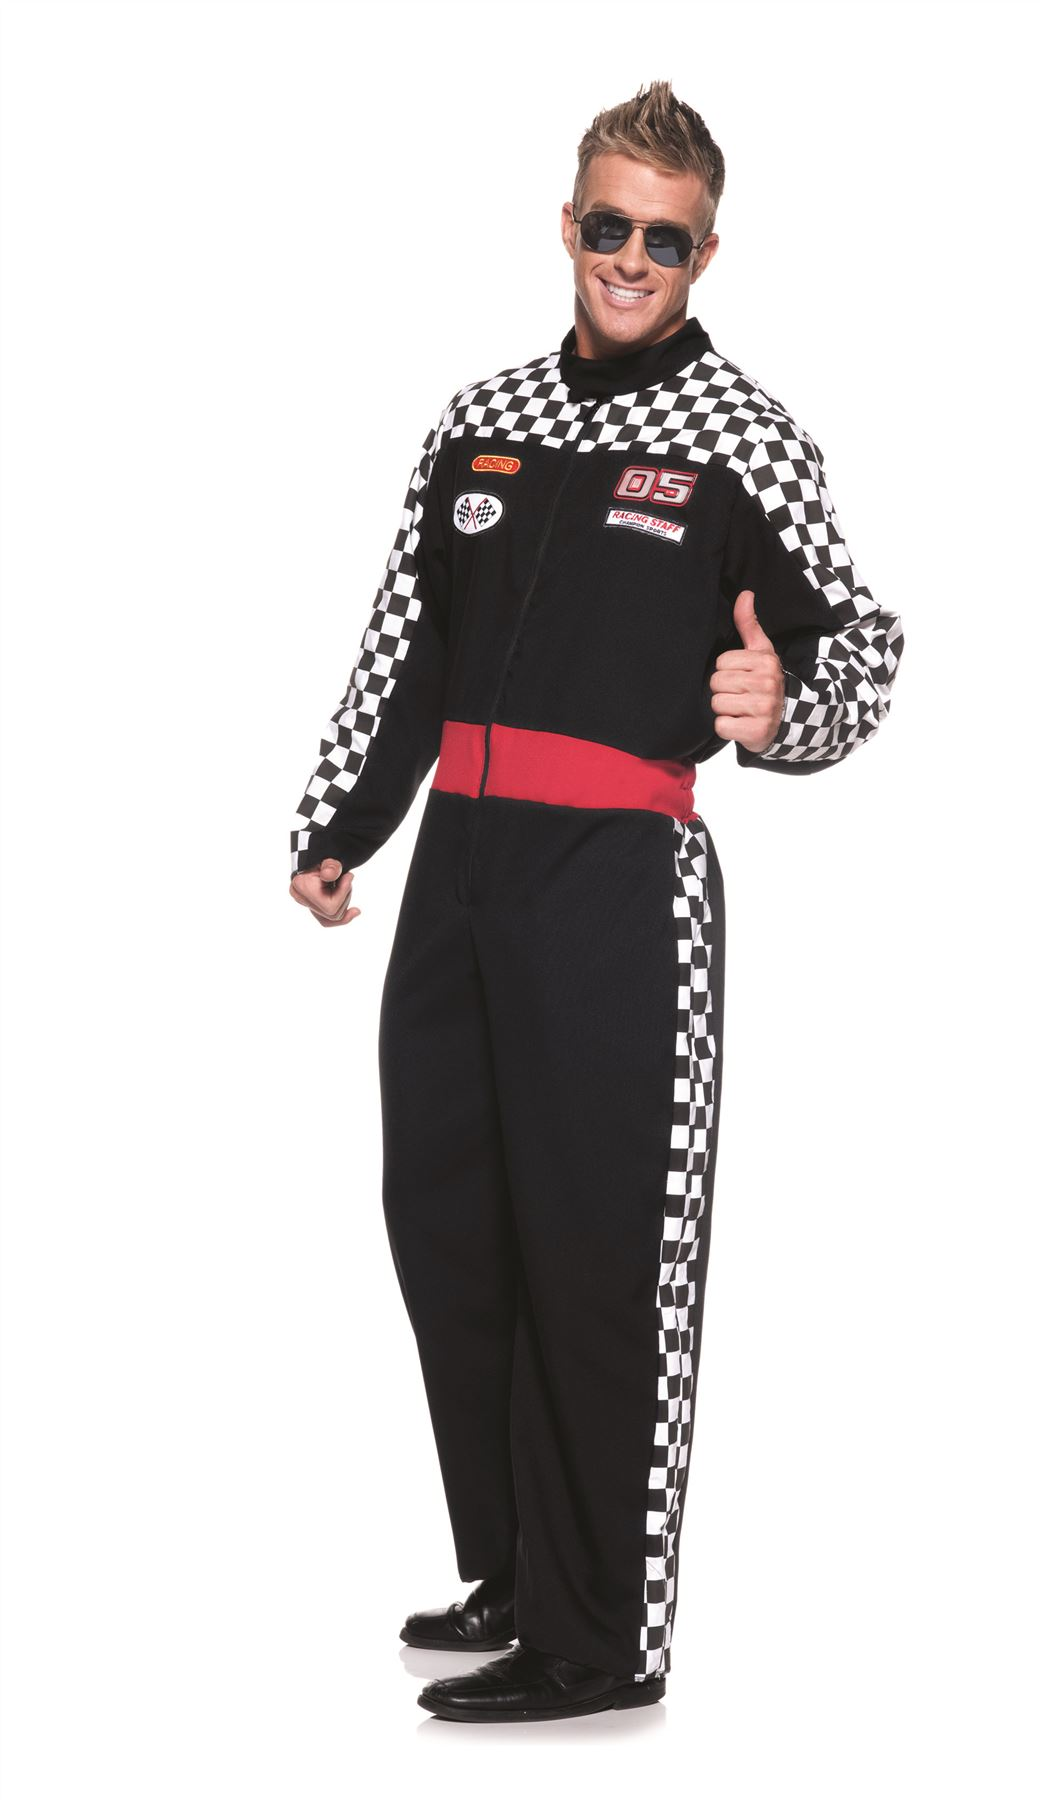 race car driver uniform jumpsuit nascar adult mens halloween costume